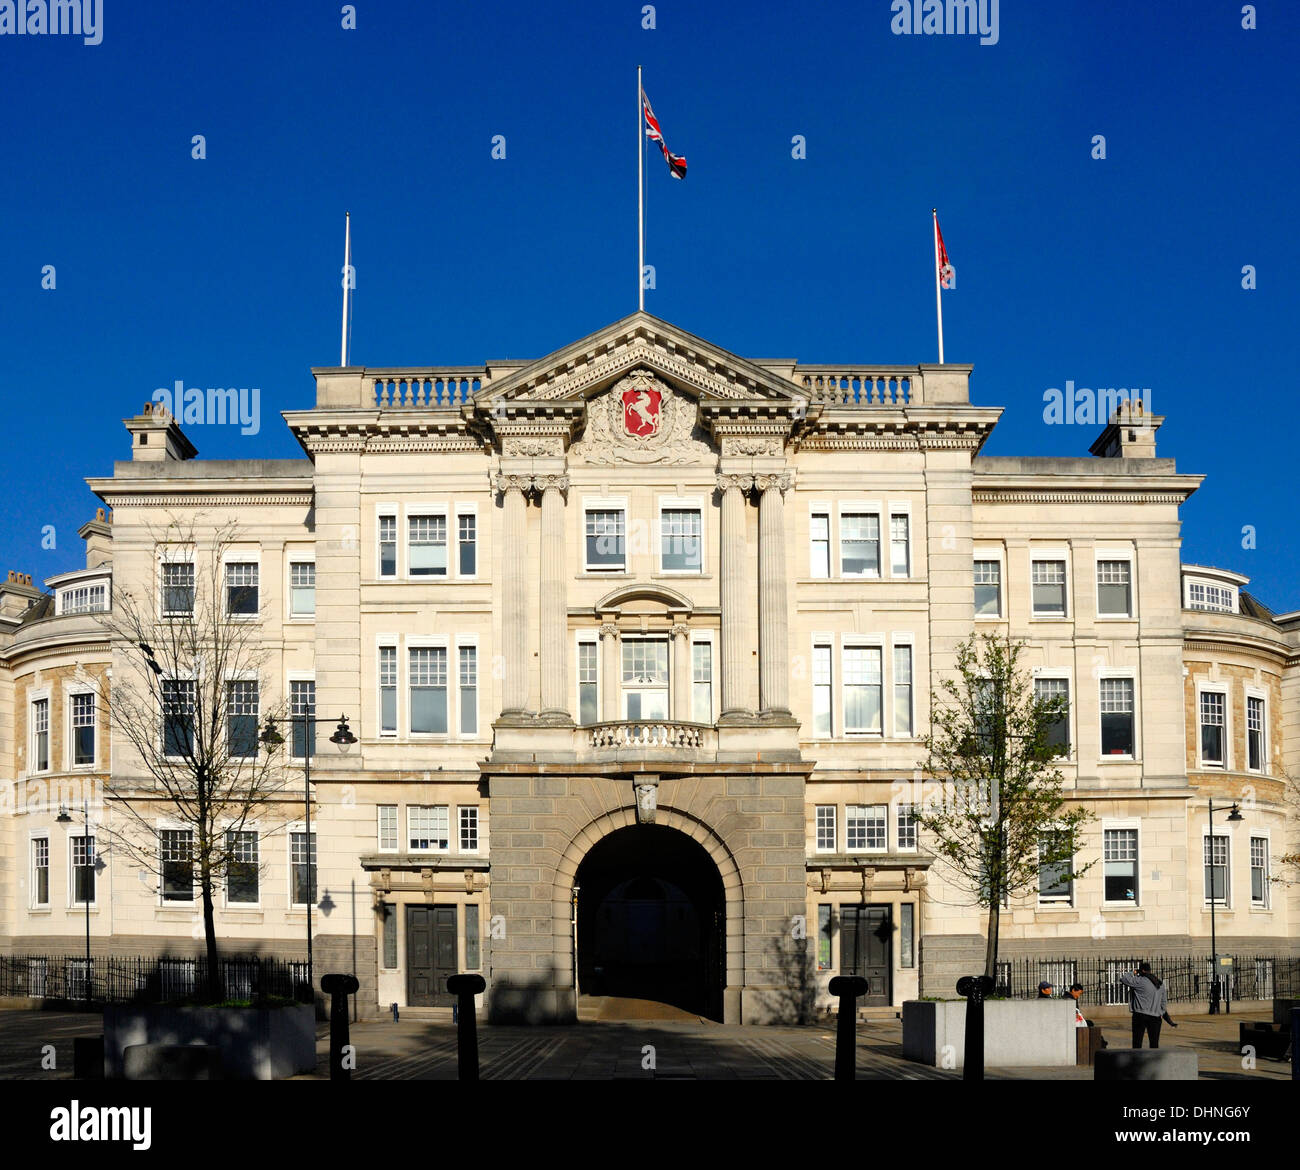 Maidstone, Kent, England, UK. County Hall / Sessions House. Headquarters of the Kent County Council - Stock Image